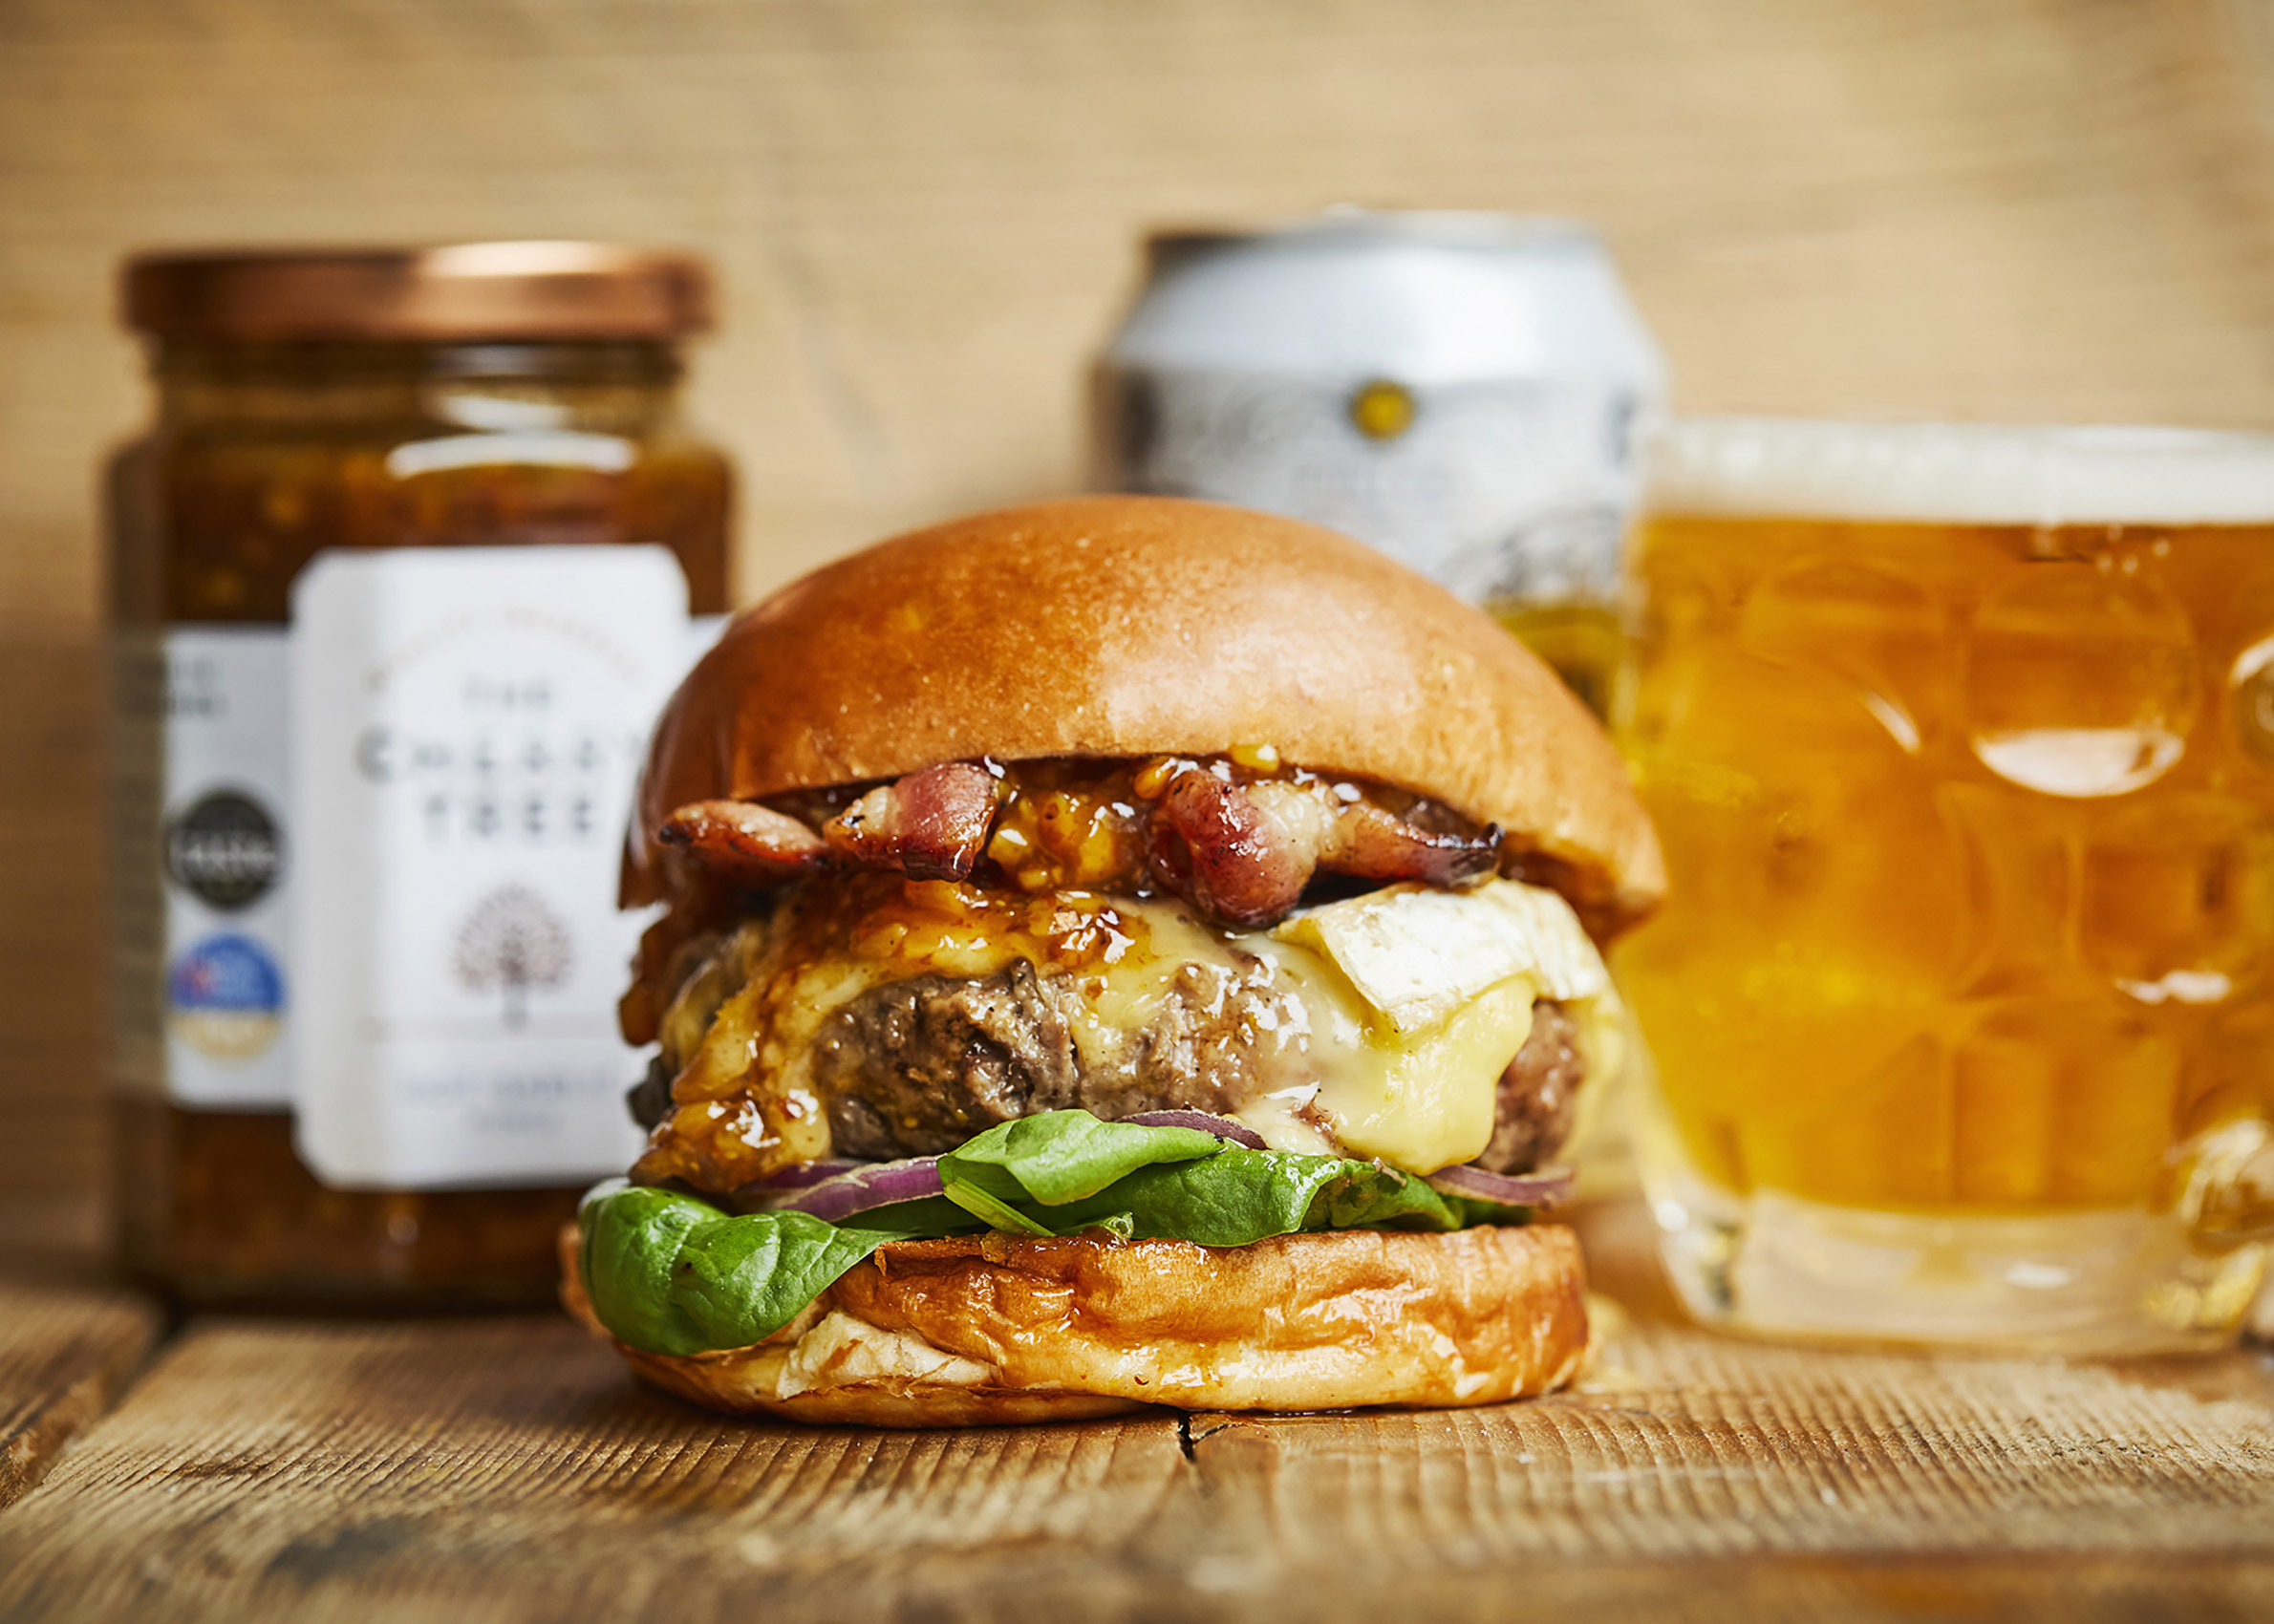 SteveRyan_Photographer_HonestBurgers_Burger_12